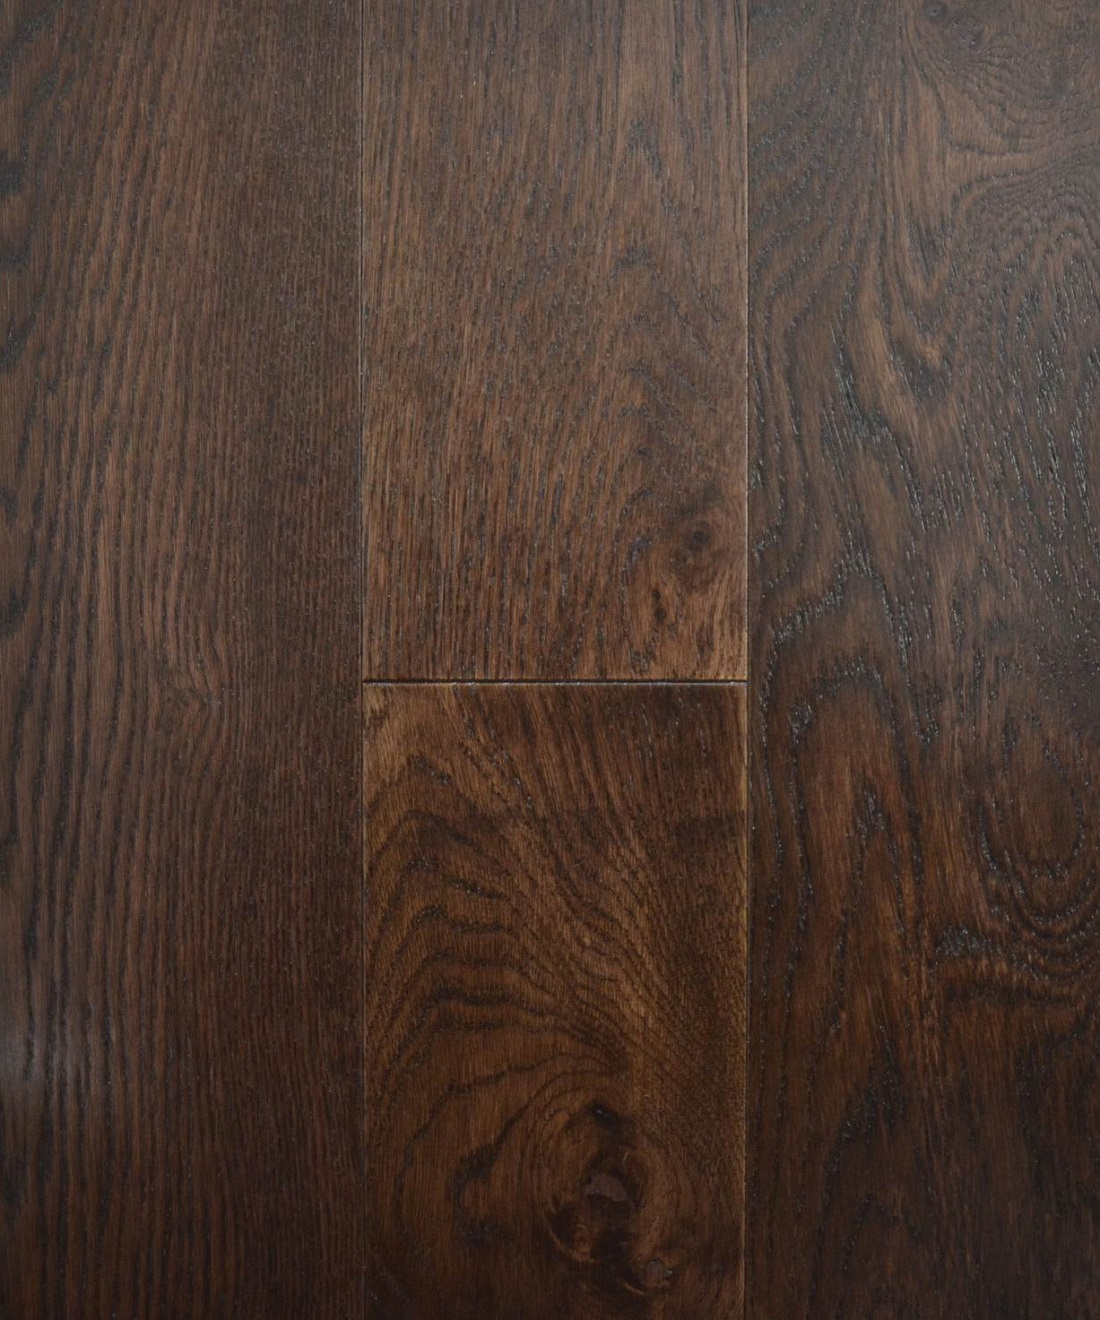 Lm Flooring Center Street Mocha Hardwood Flooring